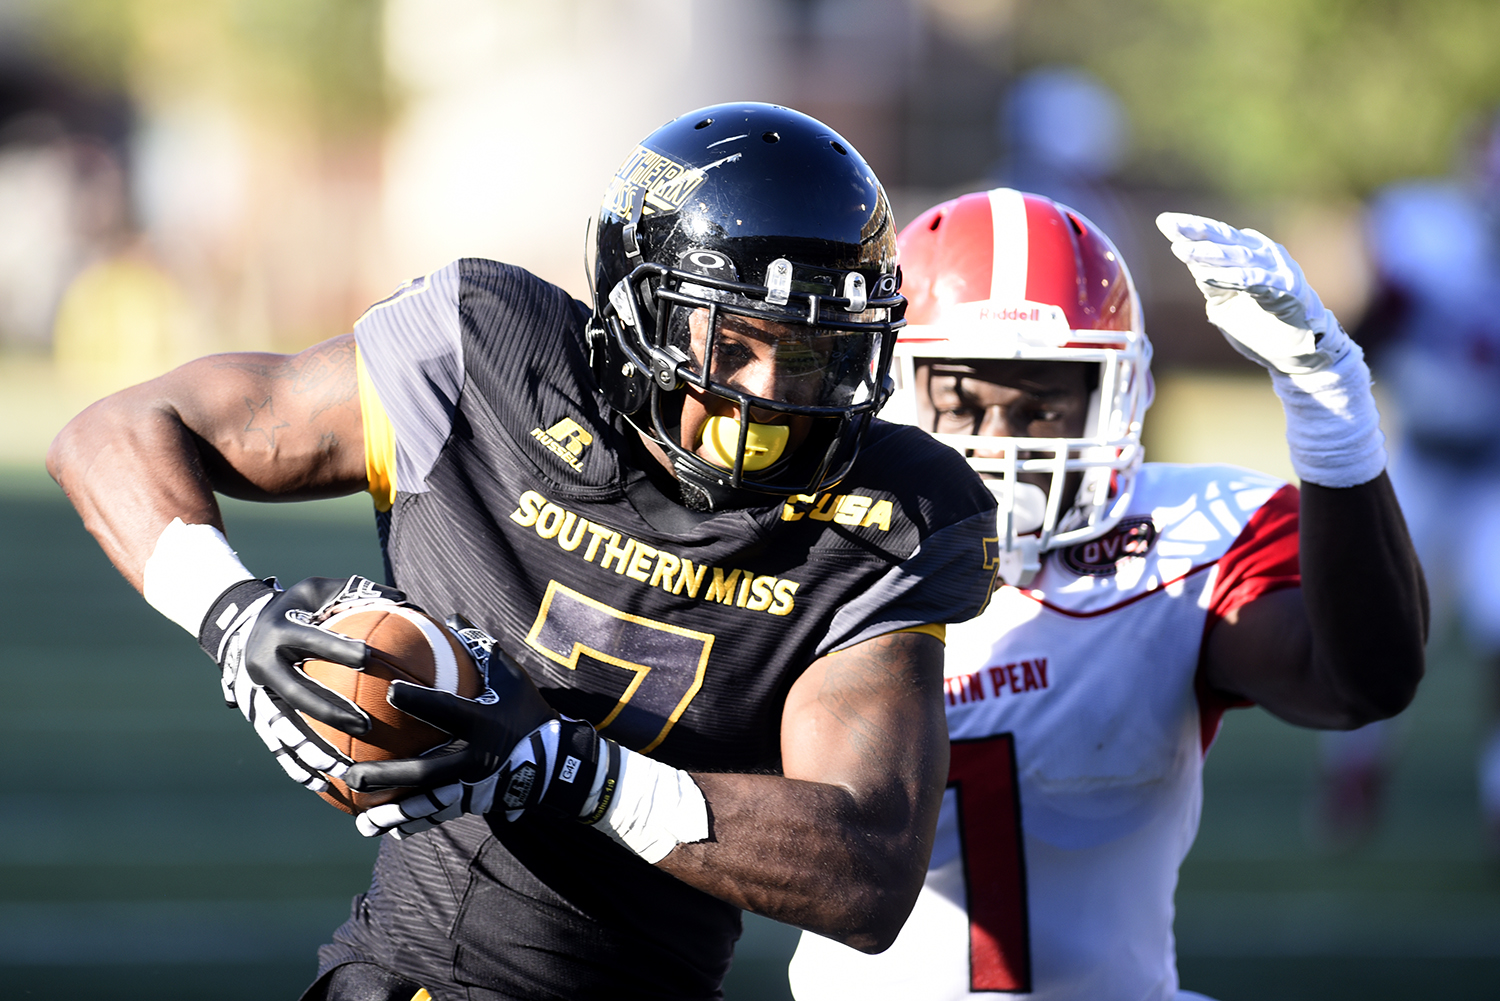 Justice Hayes runs past an Austin Peay defender during the second game of the season. The Golden Eagles won against the Governors 52-6 Sept 12, 2015.